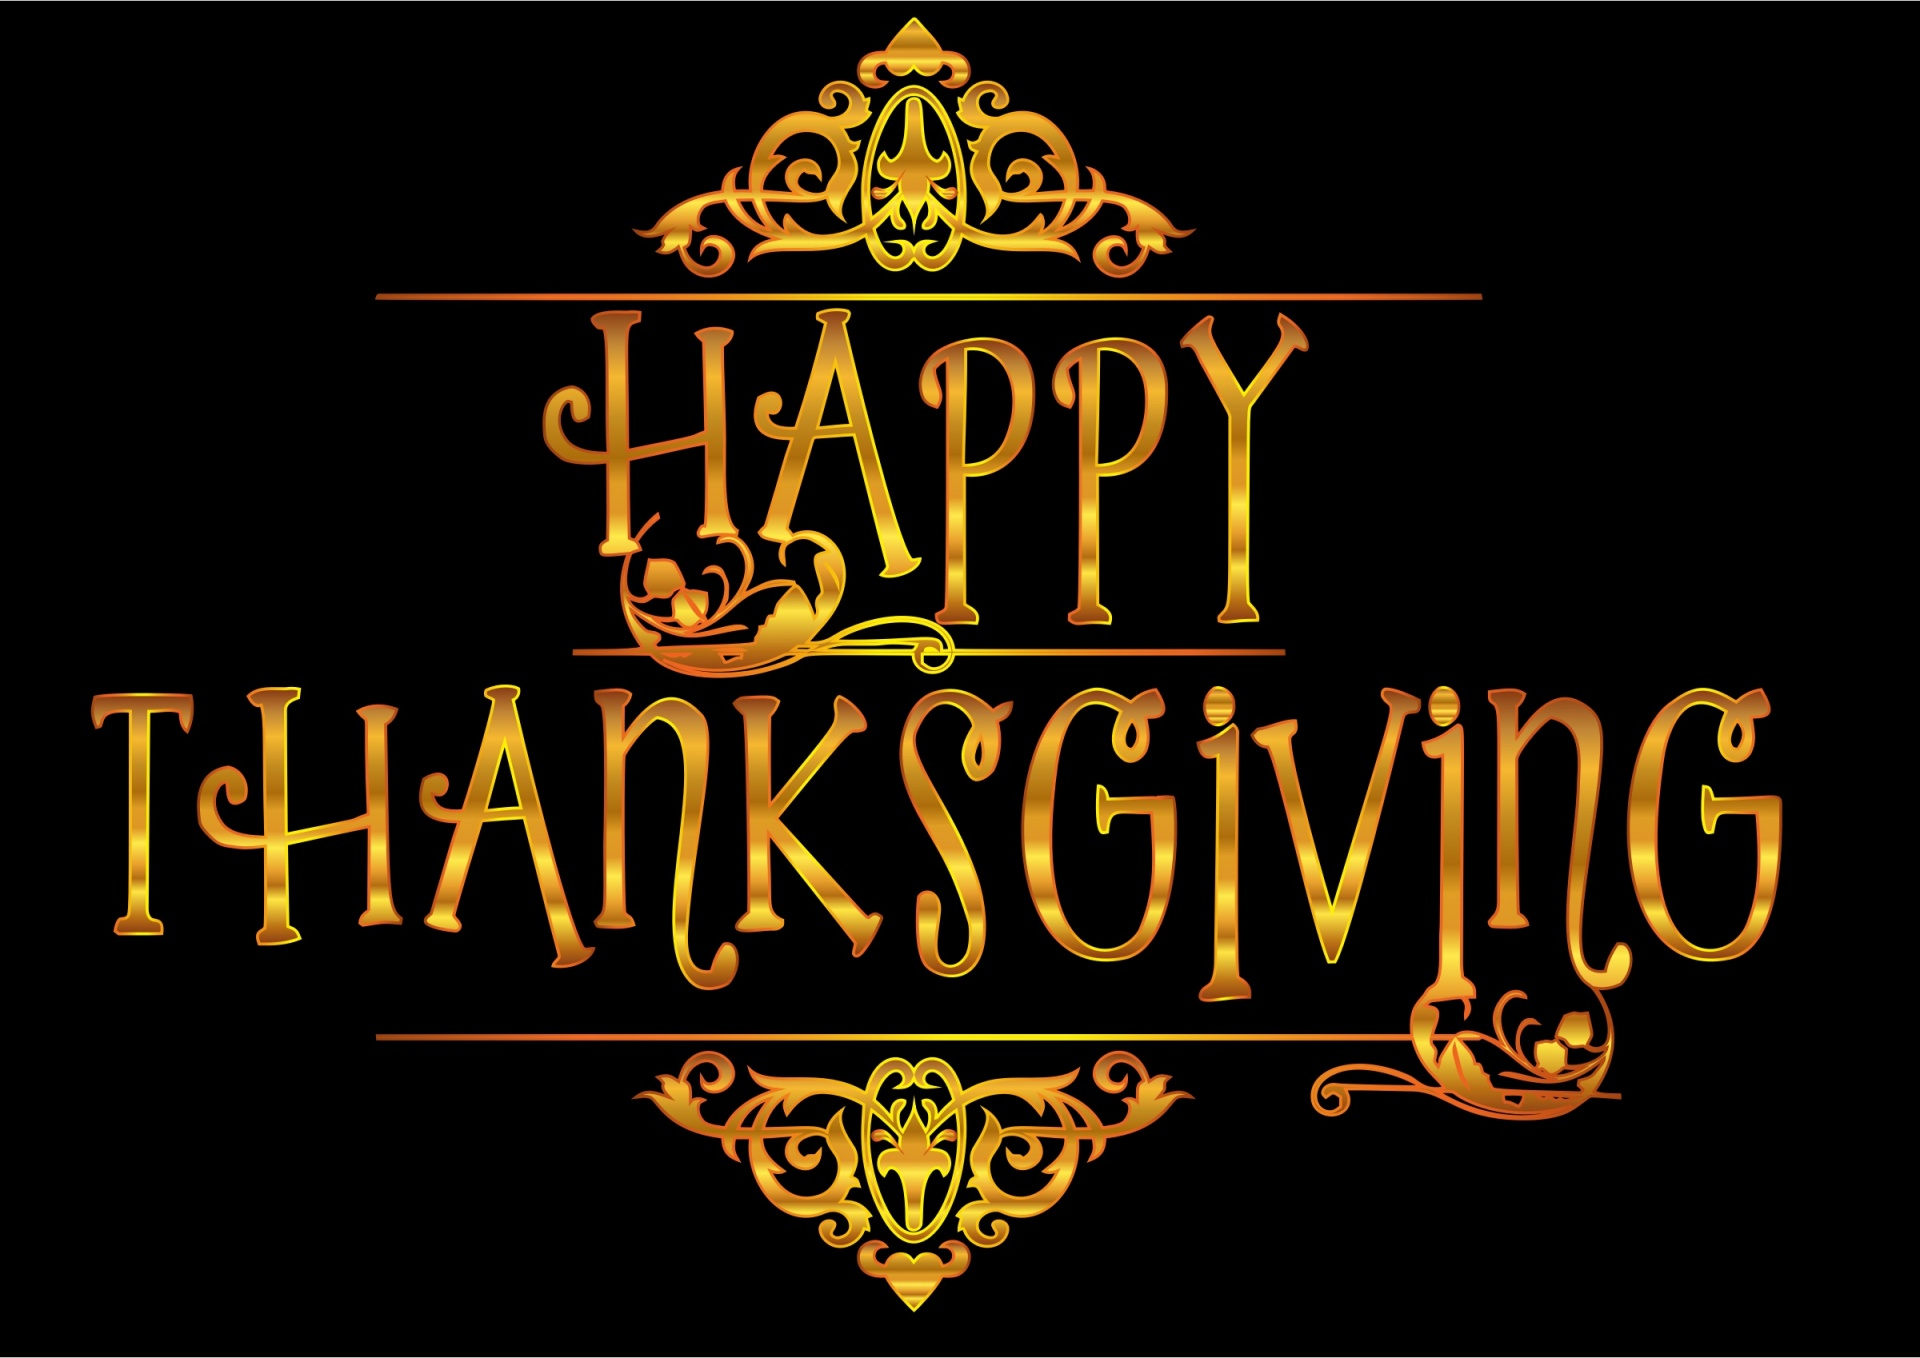 Terrific Happy Thanksgiving Black Background Happy Thanksgiving Black Background Free Stock Photo Public Domain Happy Thanksgiving Pics Ny Happy Thanksgiving Pics inspiration Happy Thanksgiving Pics